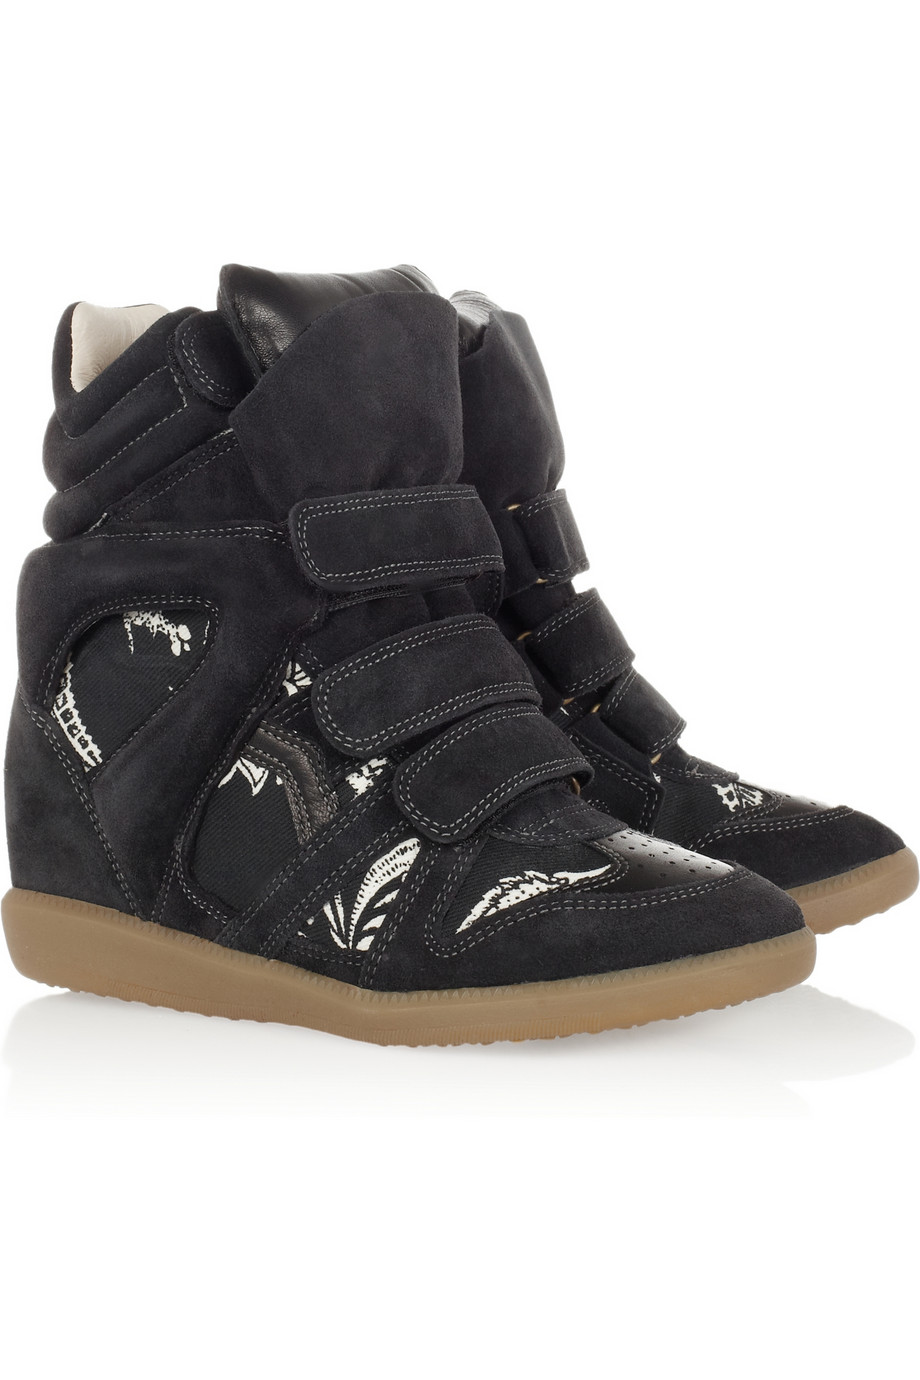 What's Up with Wedge Sneakers? 11 Reasons to Jump on the Trend